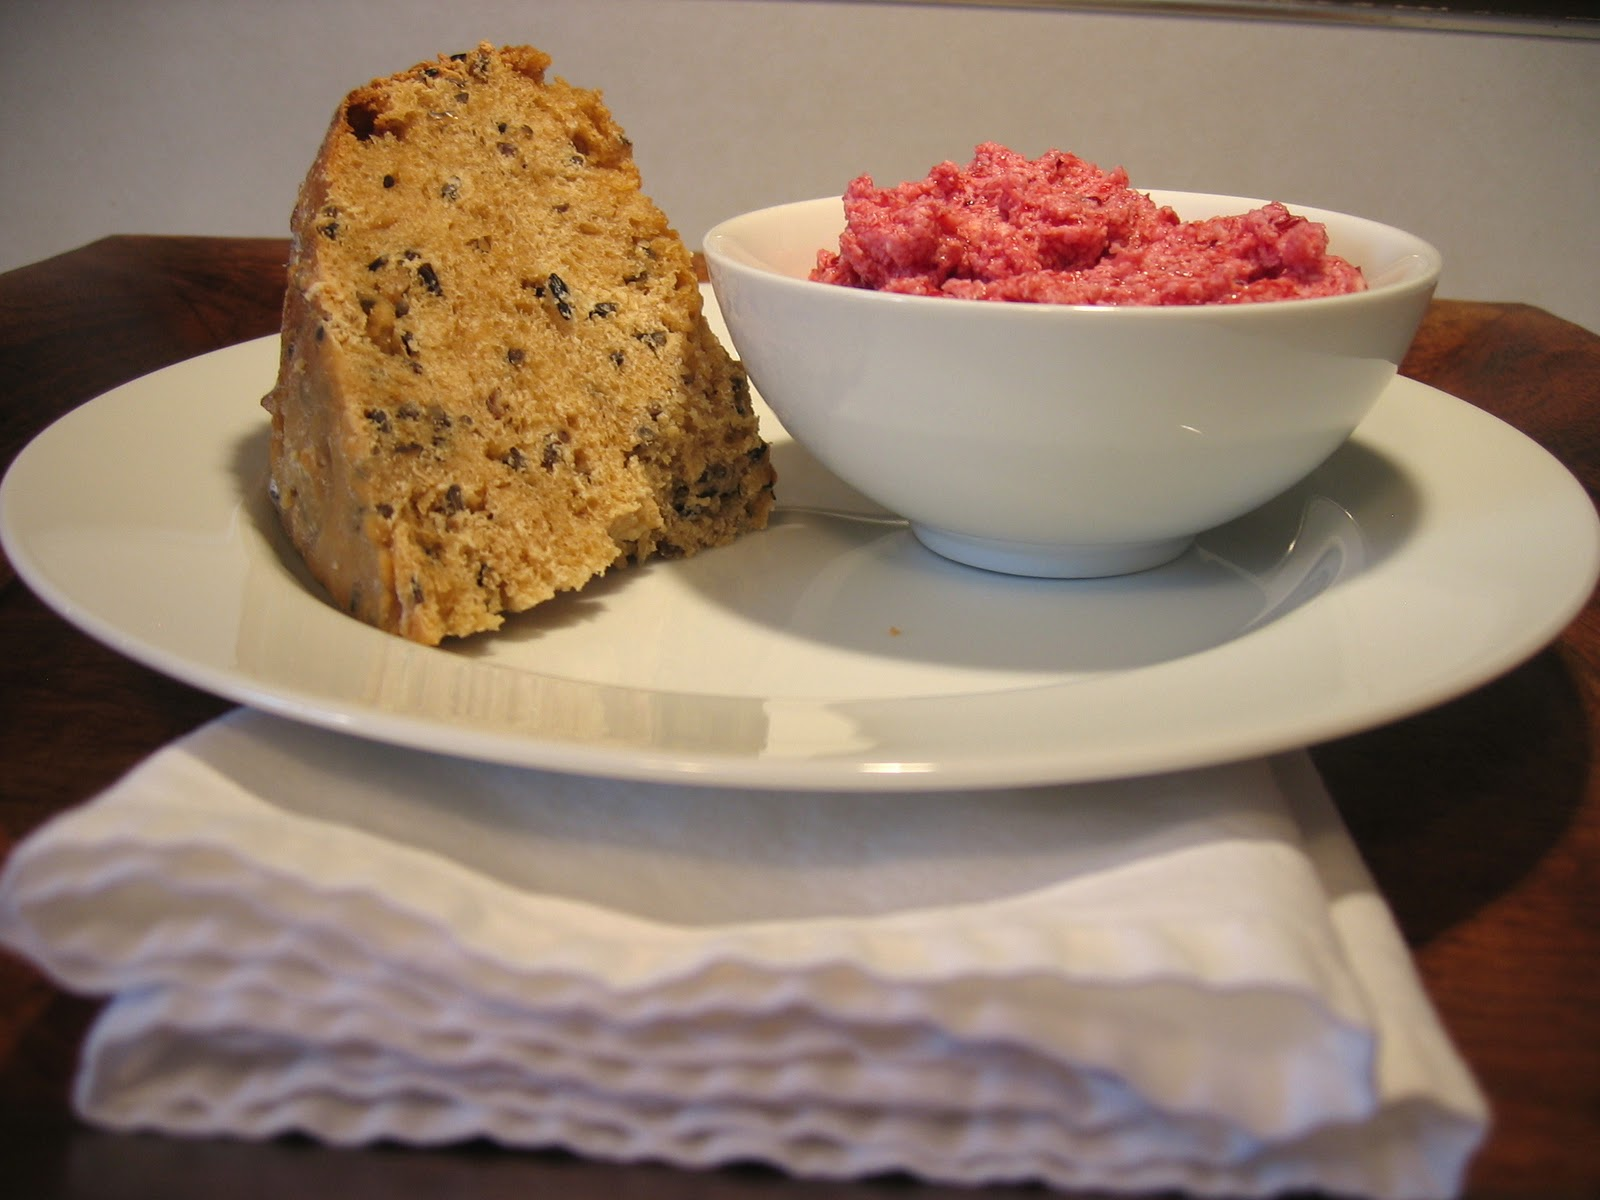 Dwelling Cents: Wild Rice Bread with Whipped Almond Cranberry Butter